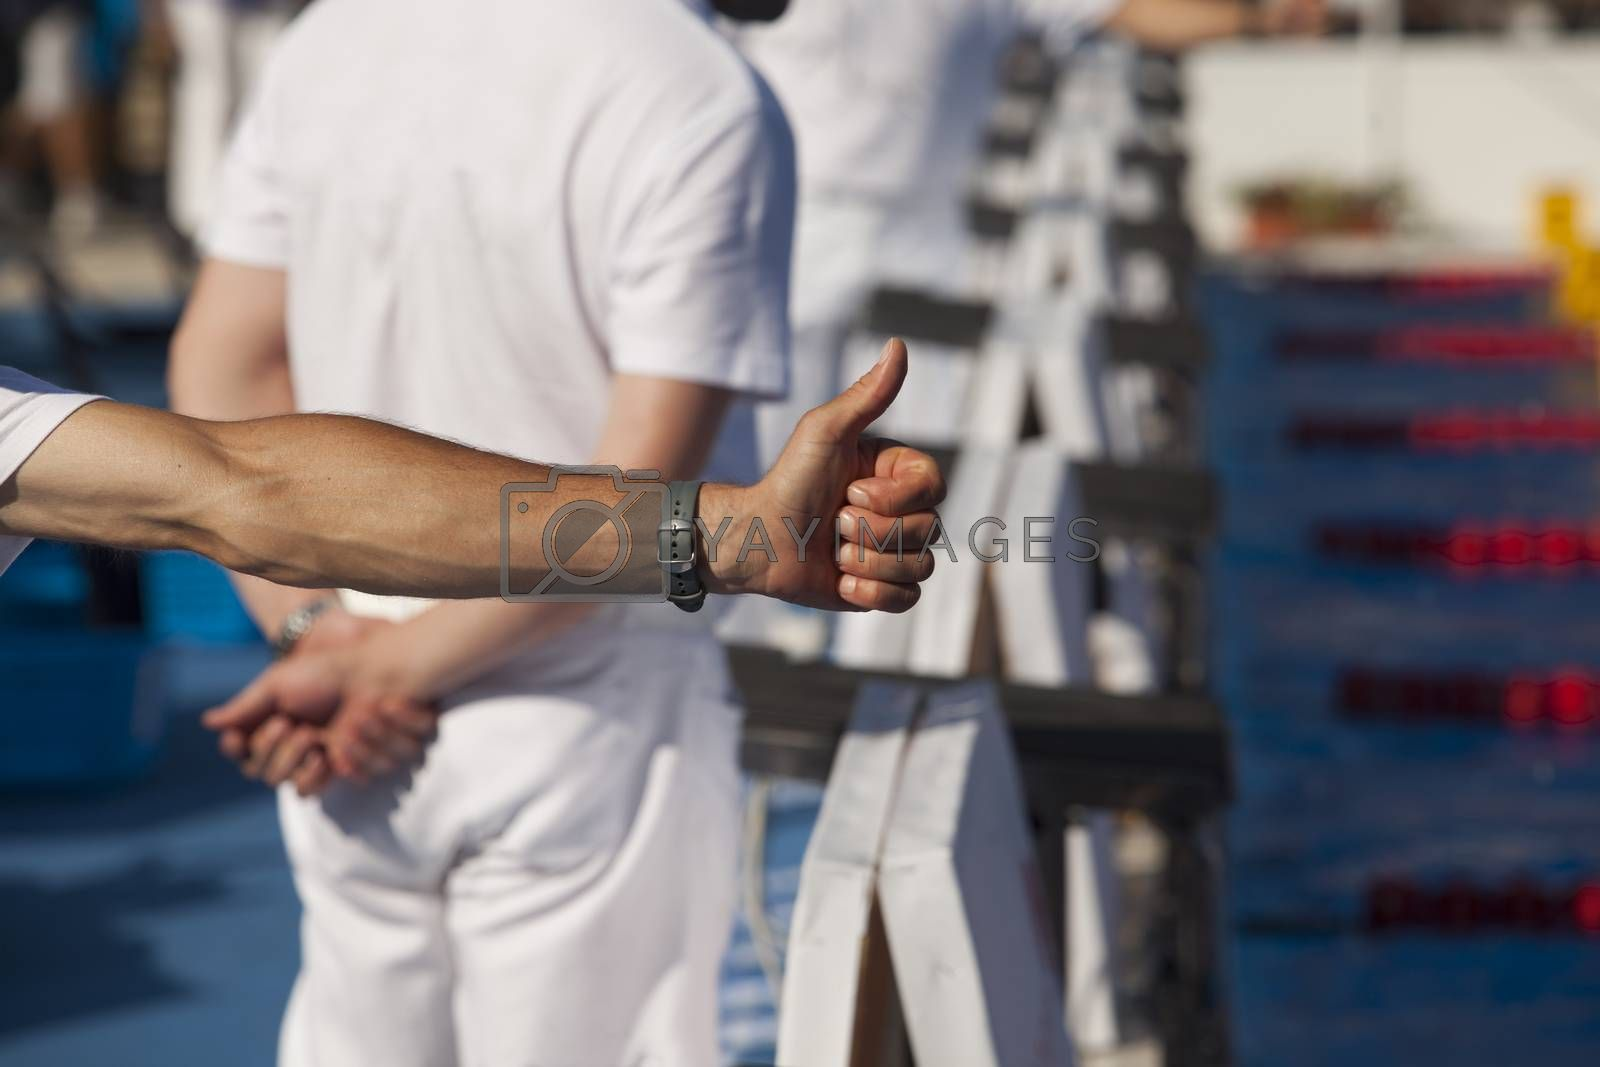 Royalty free image of Thumbs up by wellphoto